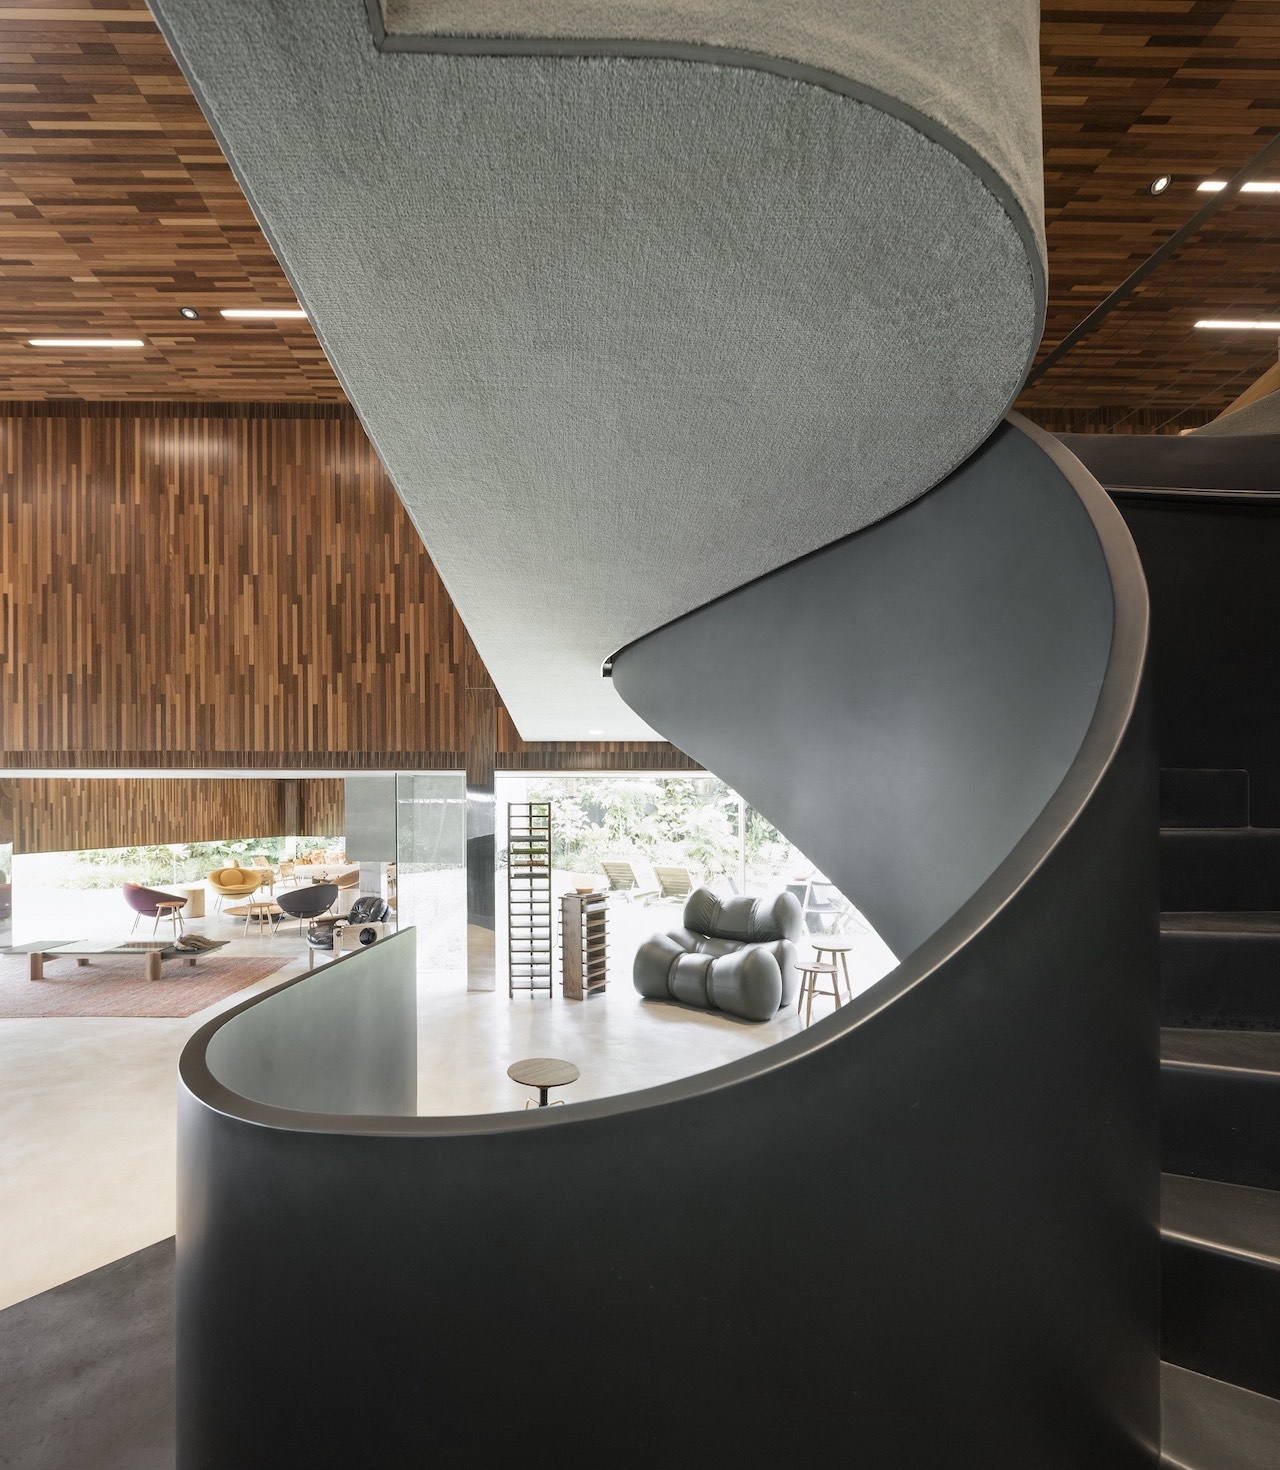 A spectacular spiral staircase leads to the showroom's mezzanine floor.